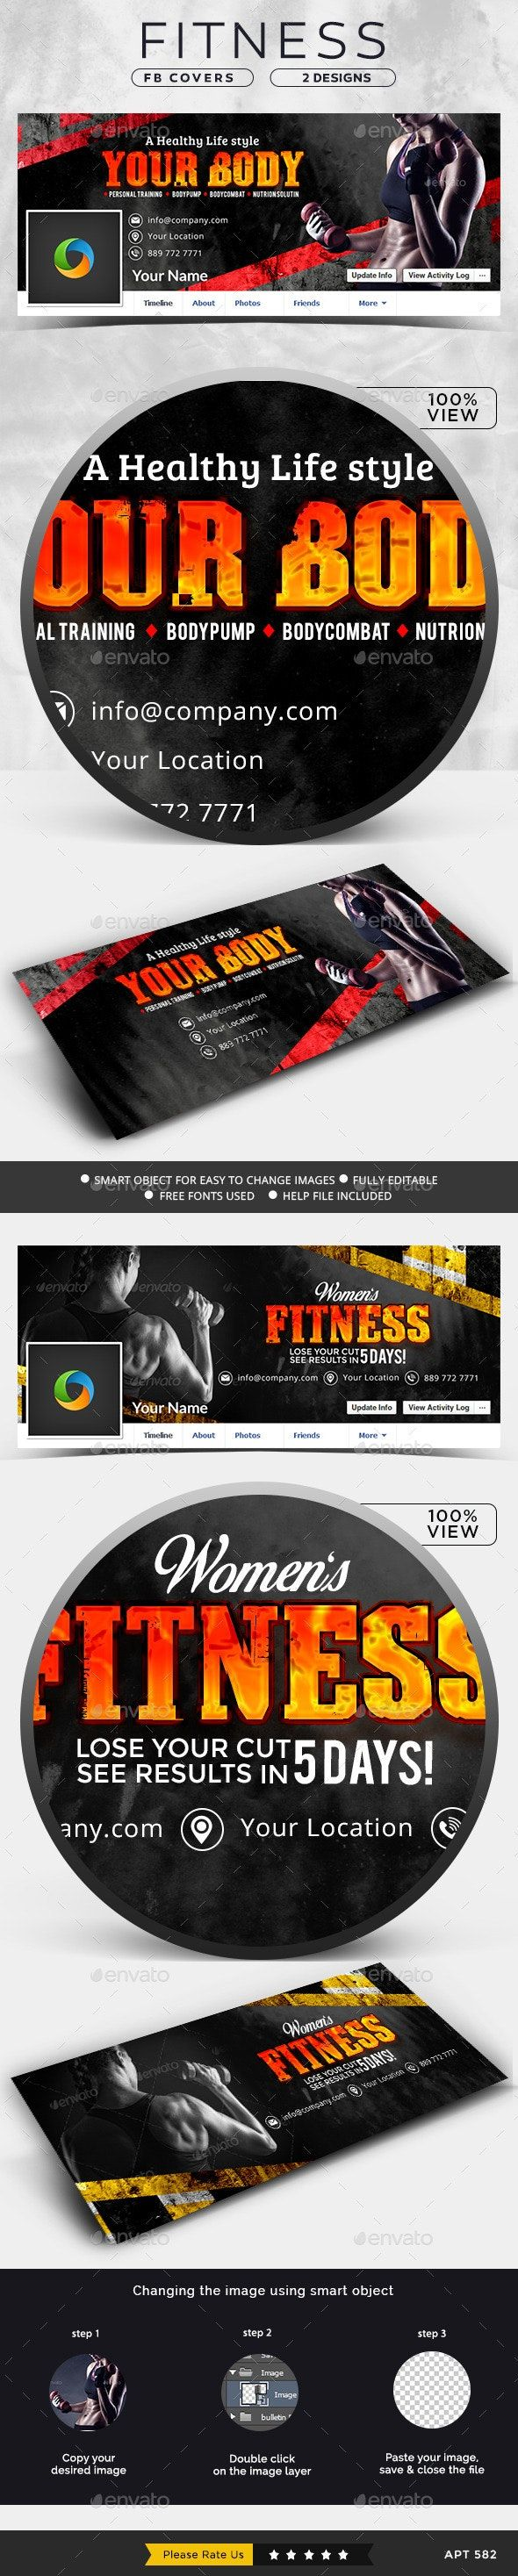 Fitness Facebook Covers - 2 Designs #Affiliate #Facebook, #Sponsored, #Fitness, #Designs, #Covers